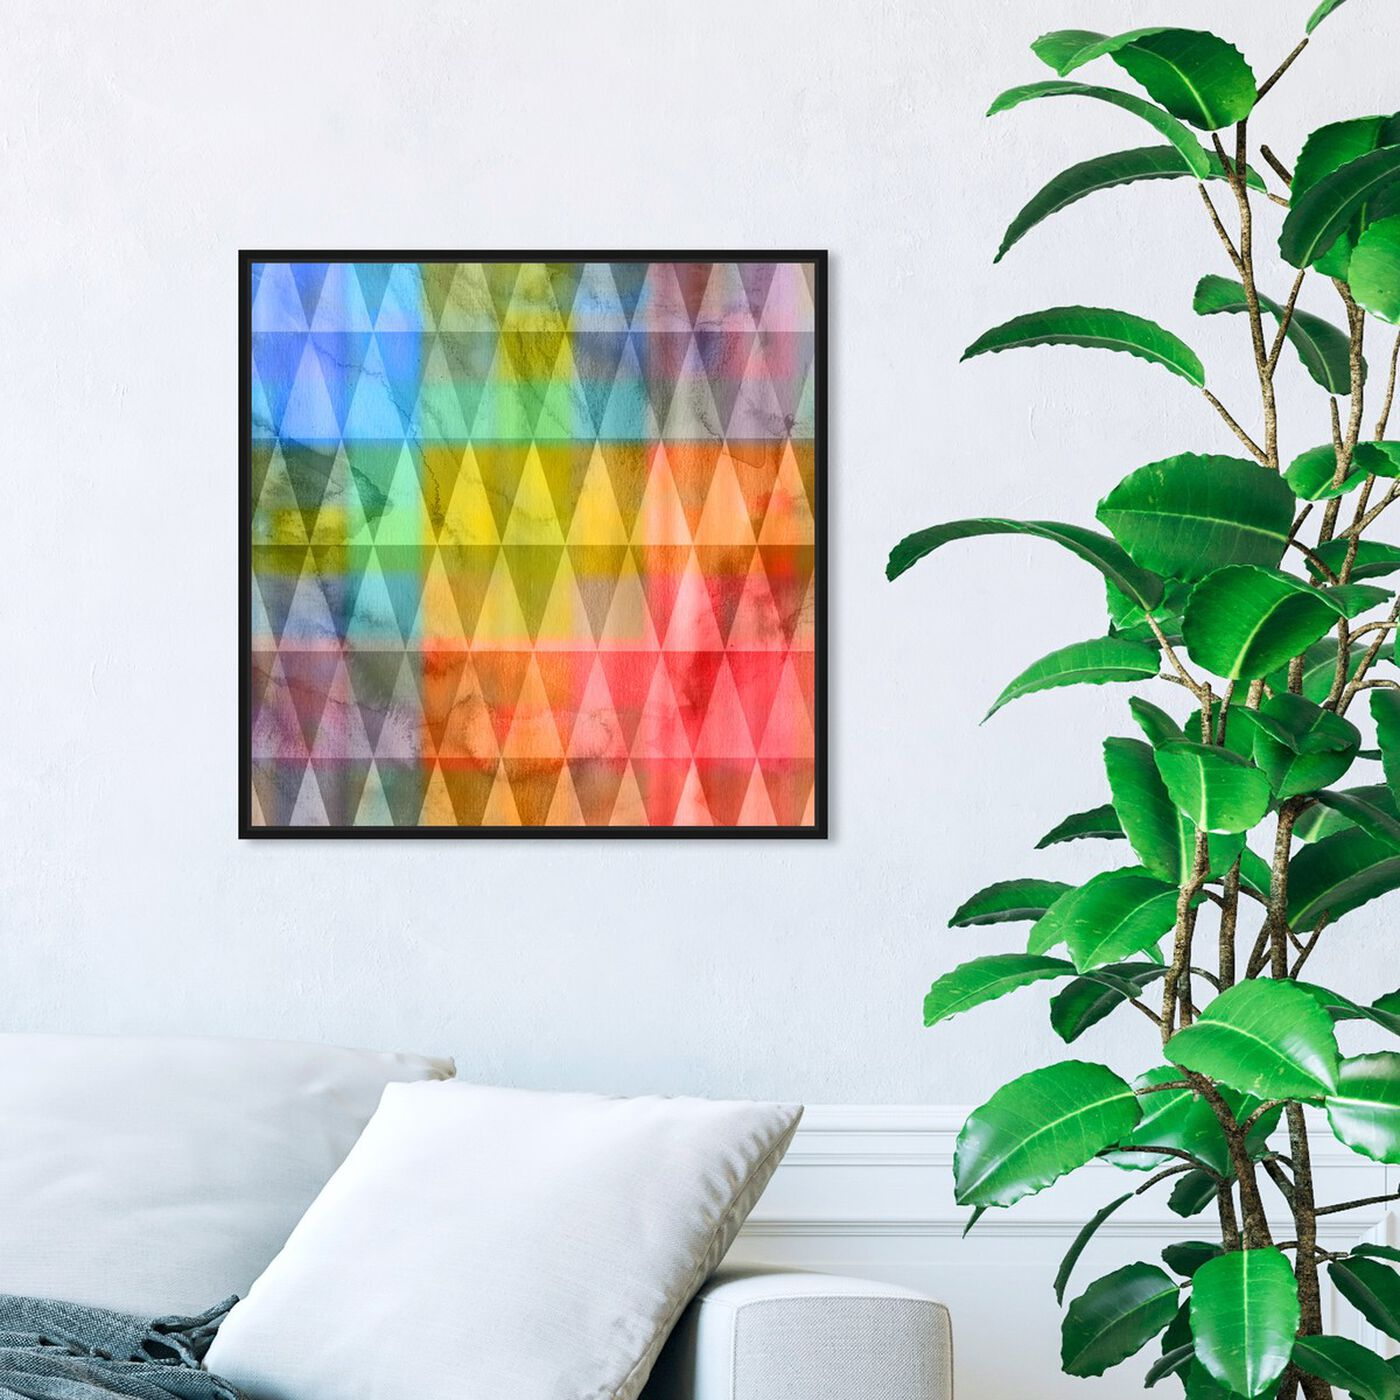 Hanging view of Meet Me at Three featuring abstract and geometric art.